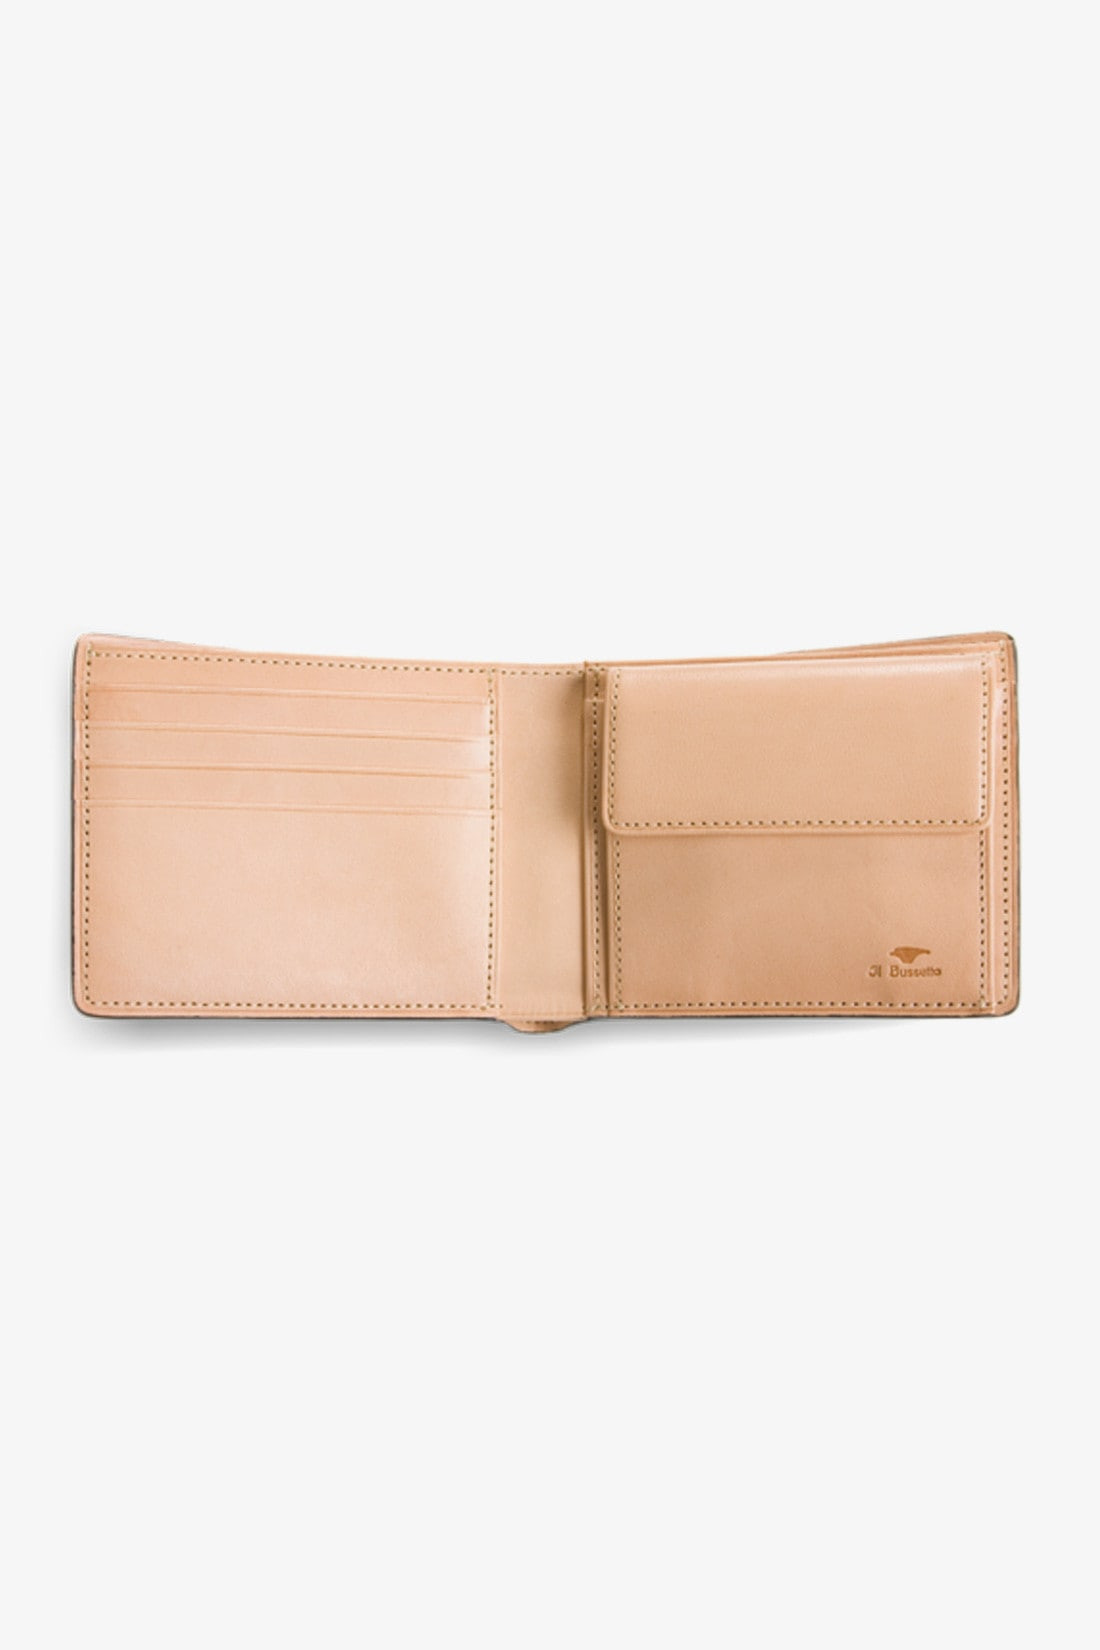 IL BUSSETTO / Bi-fold wallet w/ coin pocket Black